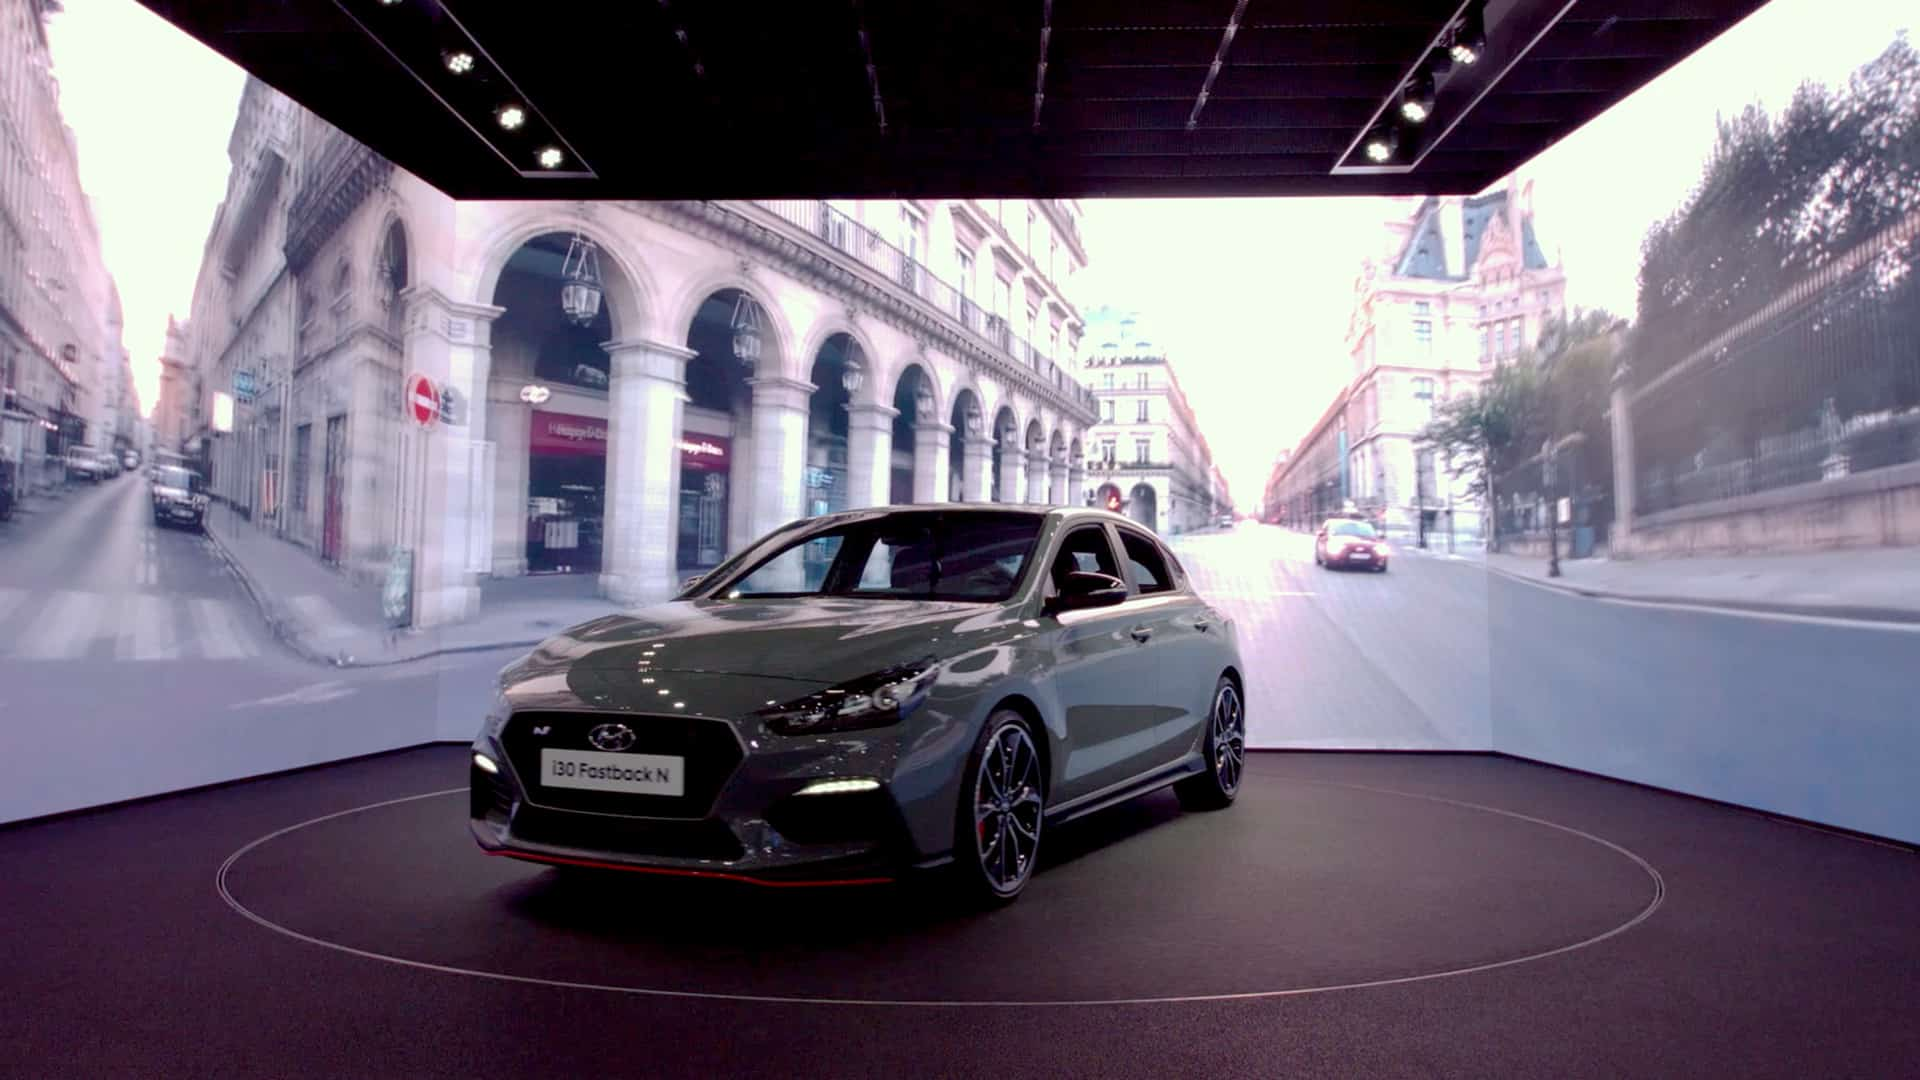 Hyundai Paris Motor Show 2018 Event Activation